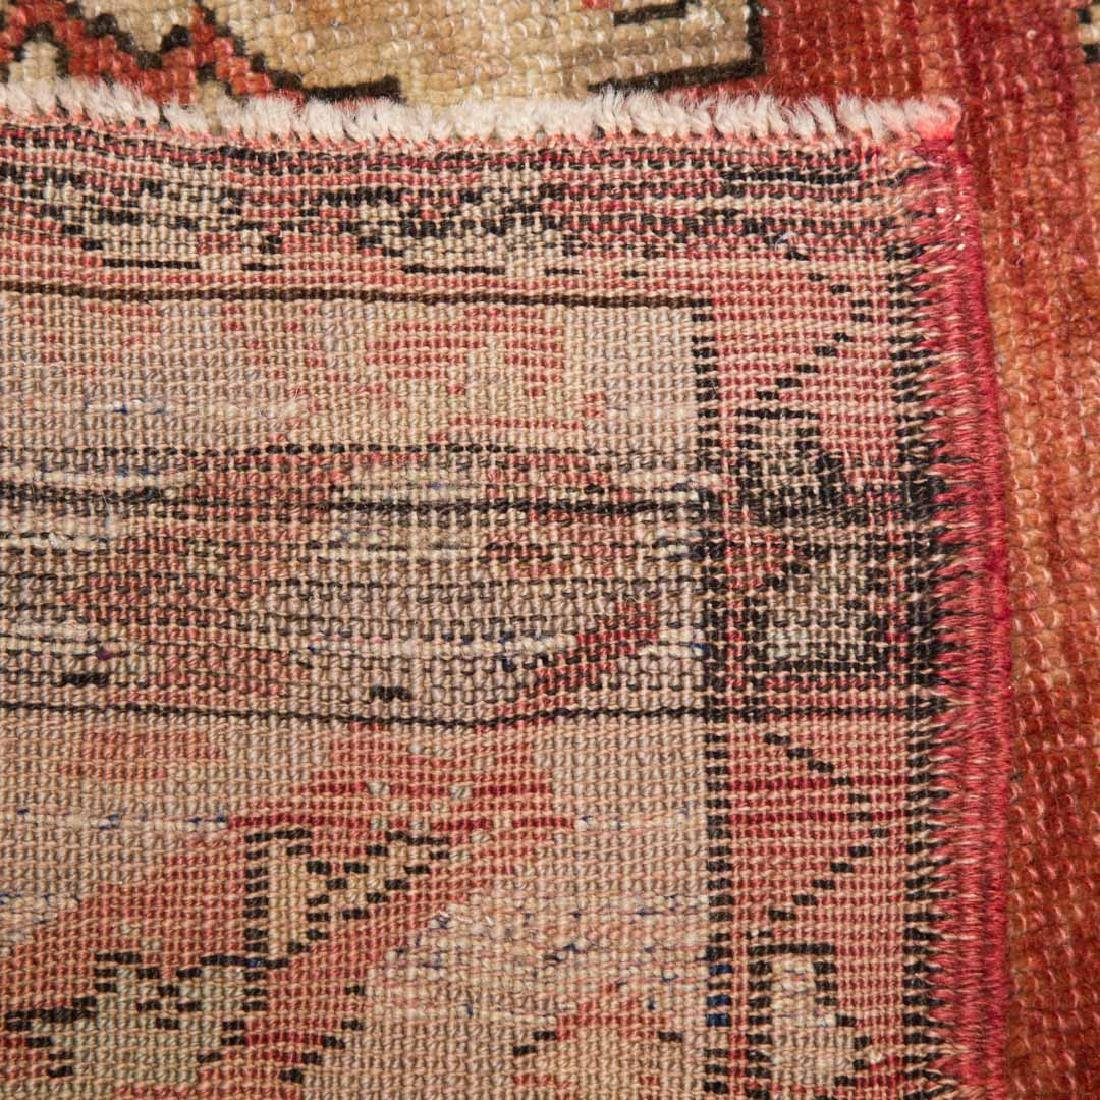 Antique Oushak rug, approx. 4.6 x 6.8 - 3